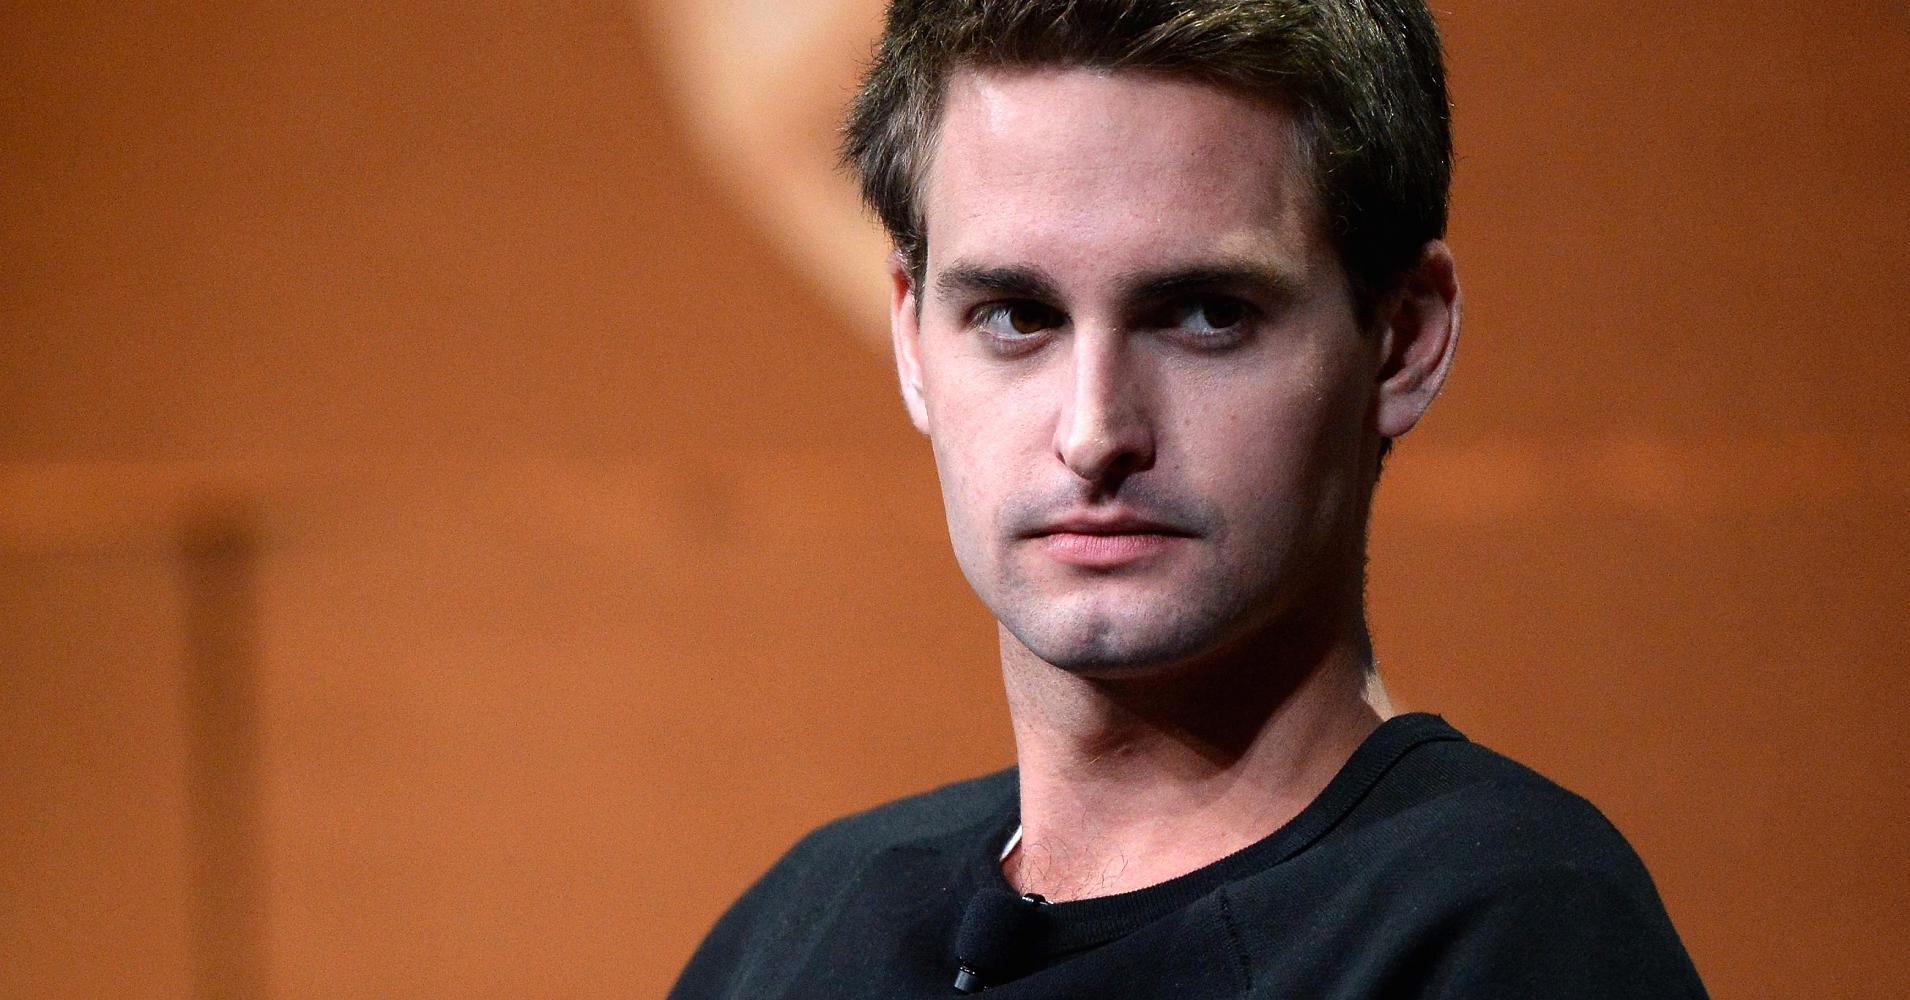 Meet 26-year-old billionaire and Snap CEO Evan Spiegel, who just filed a $3 billion IPO